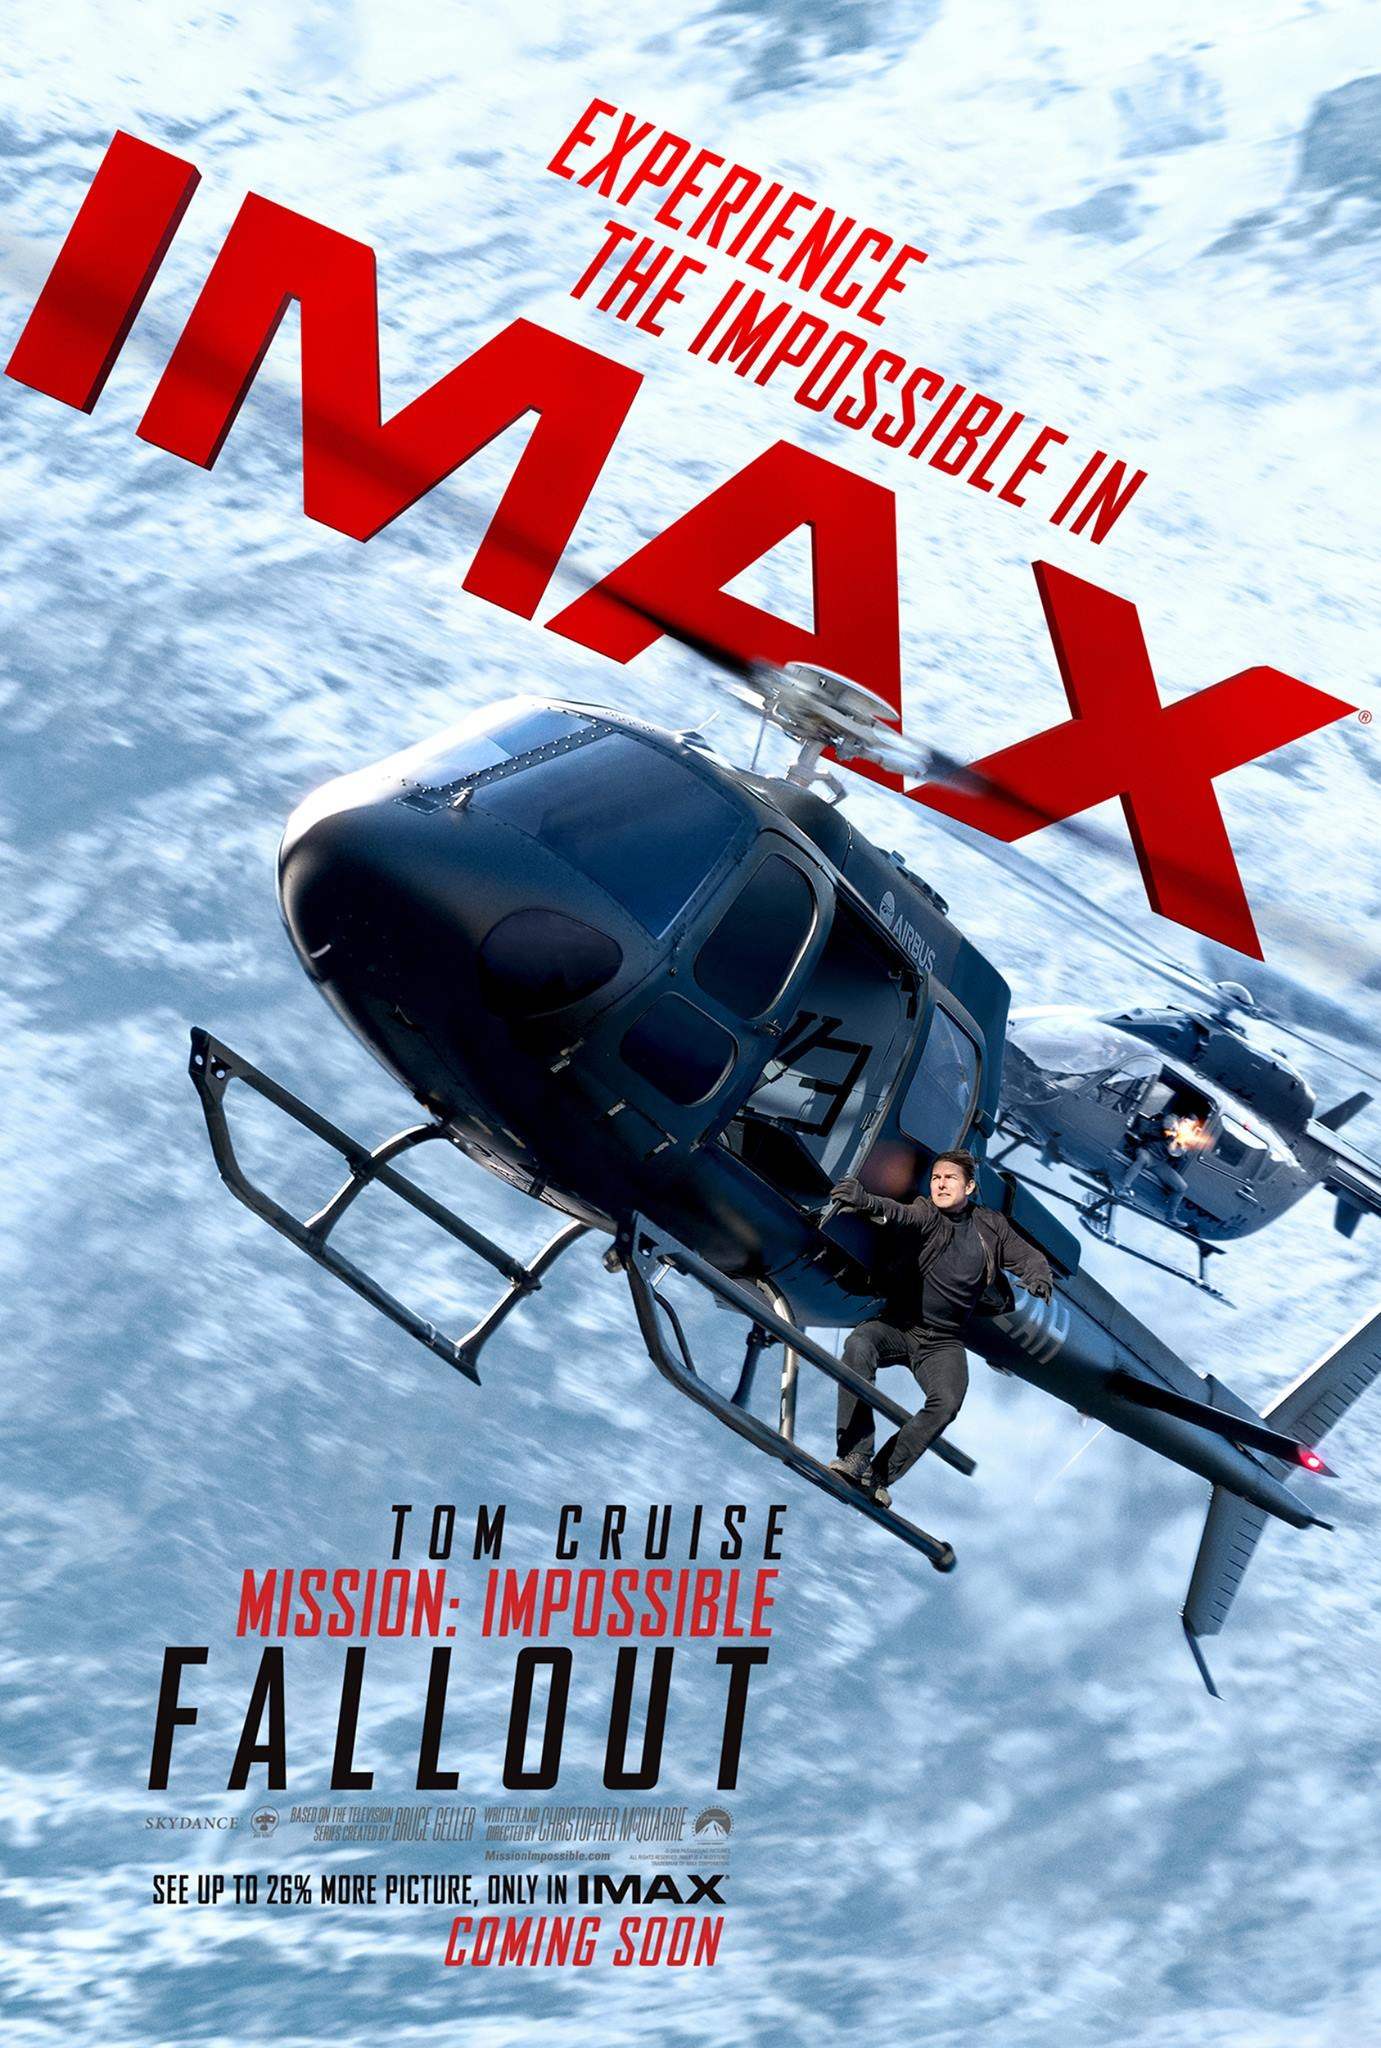 Mission Impossible Fallout poster 15.jpg